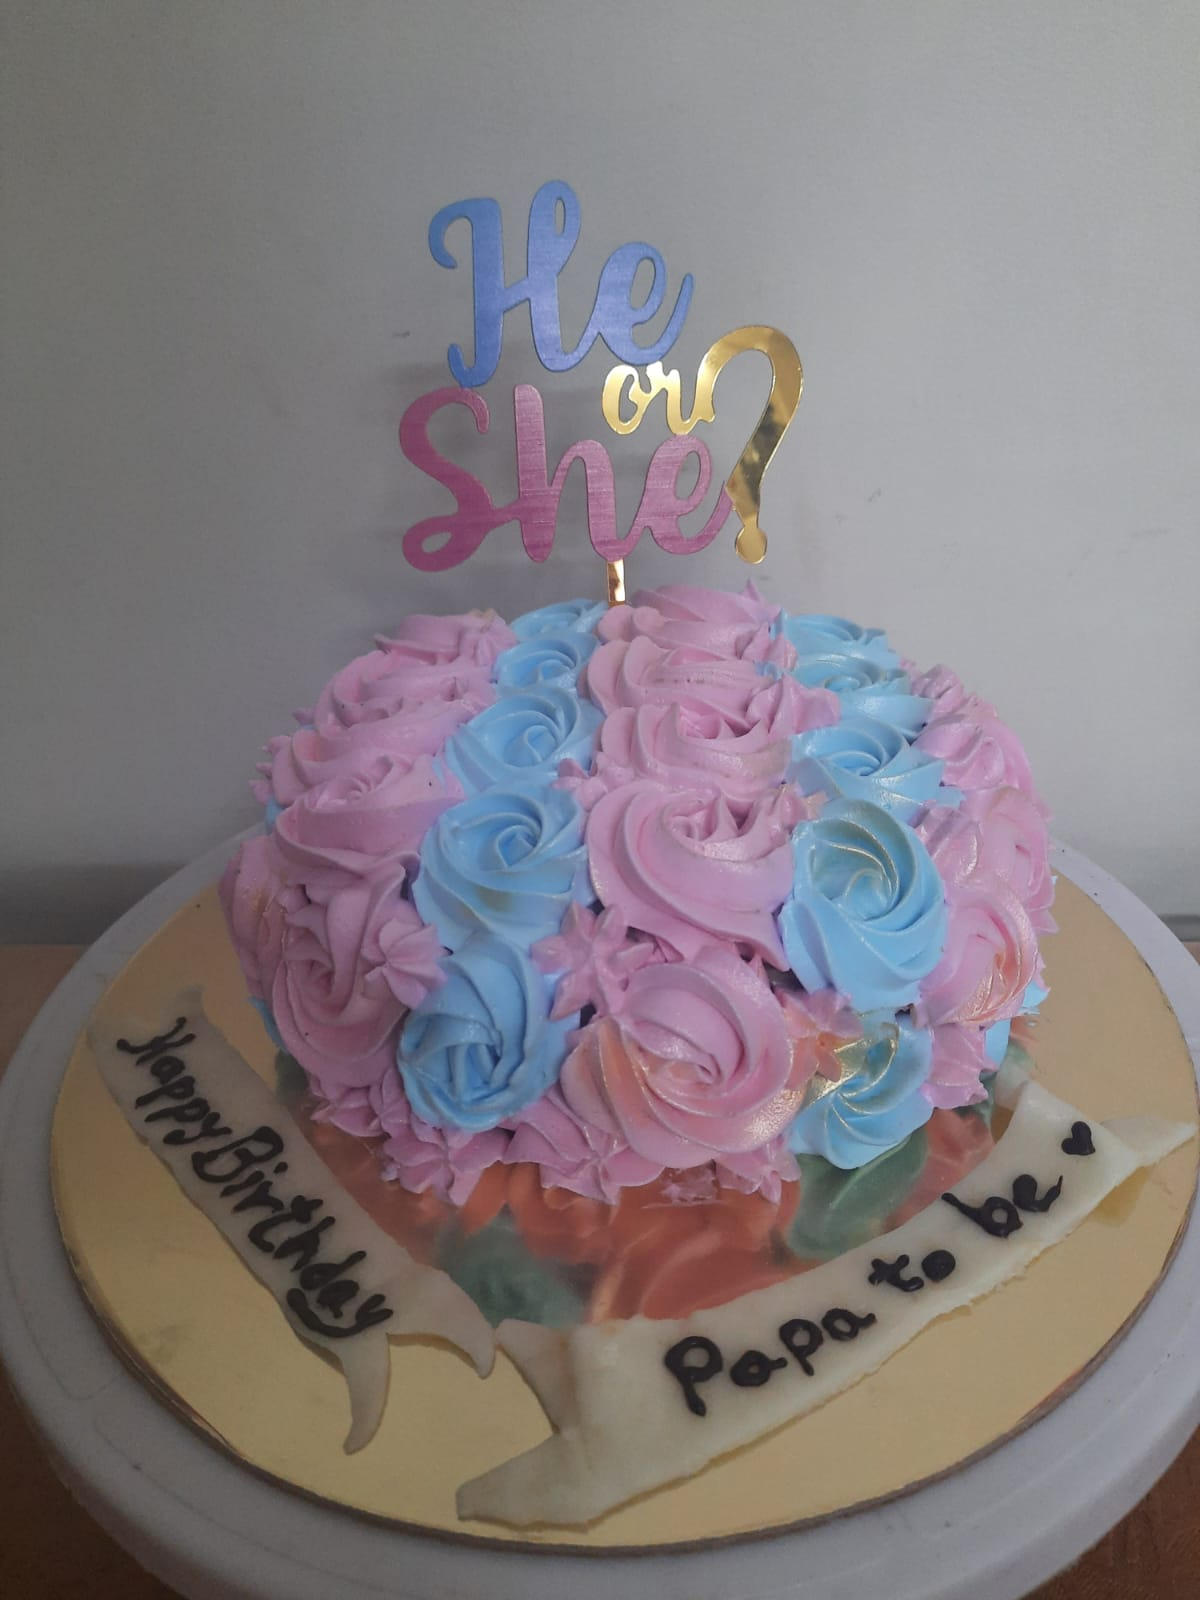 Baby Shower Chocolate Cake Designs, Images, Price Near Me